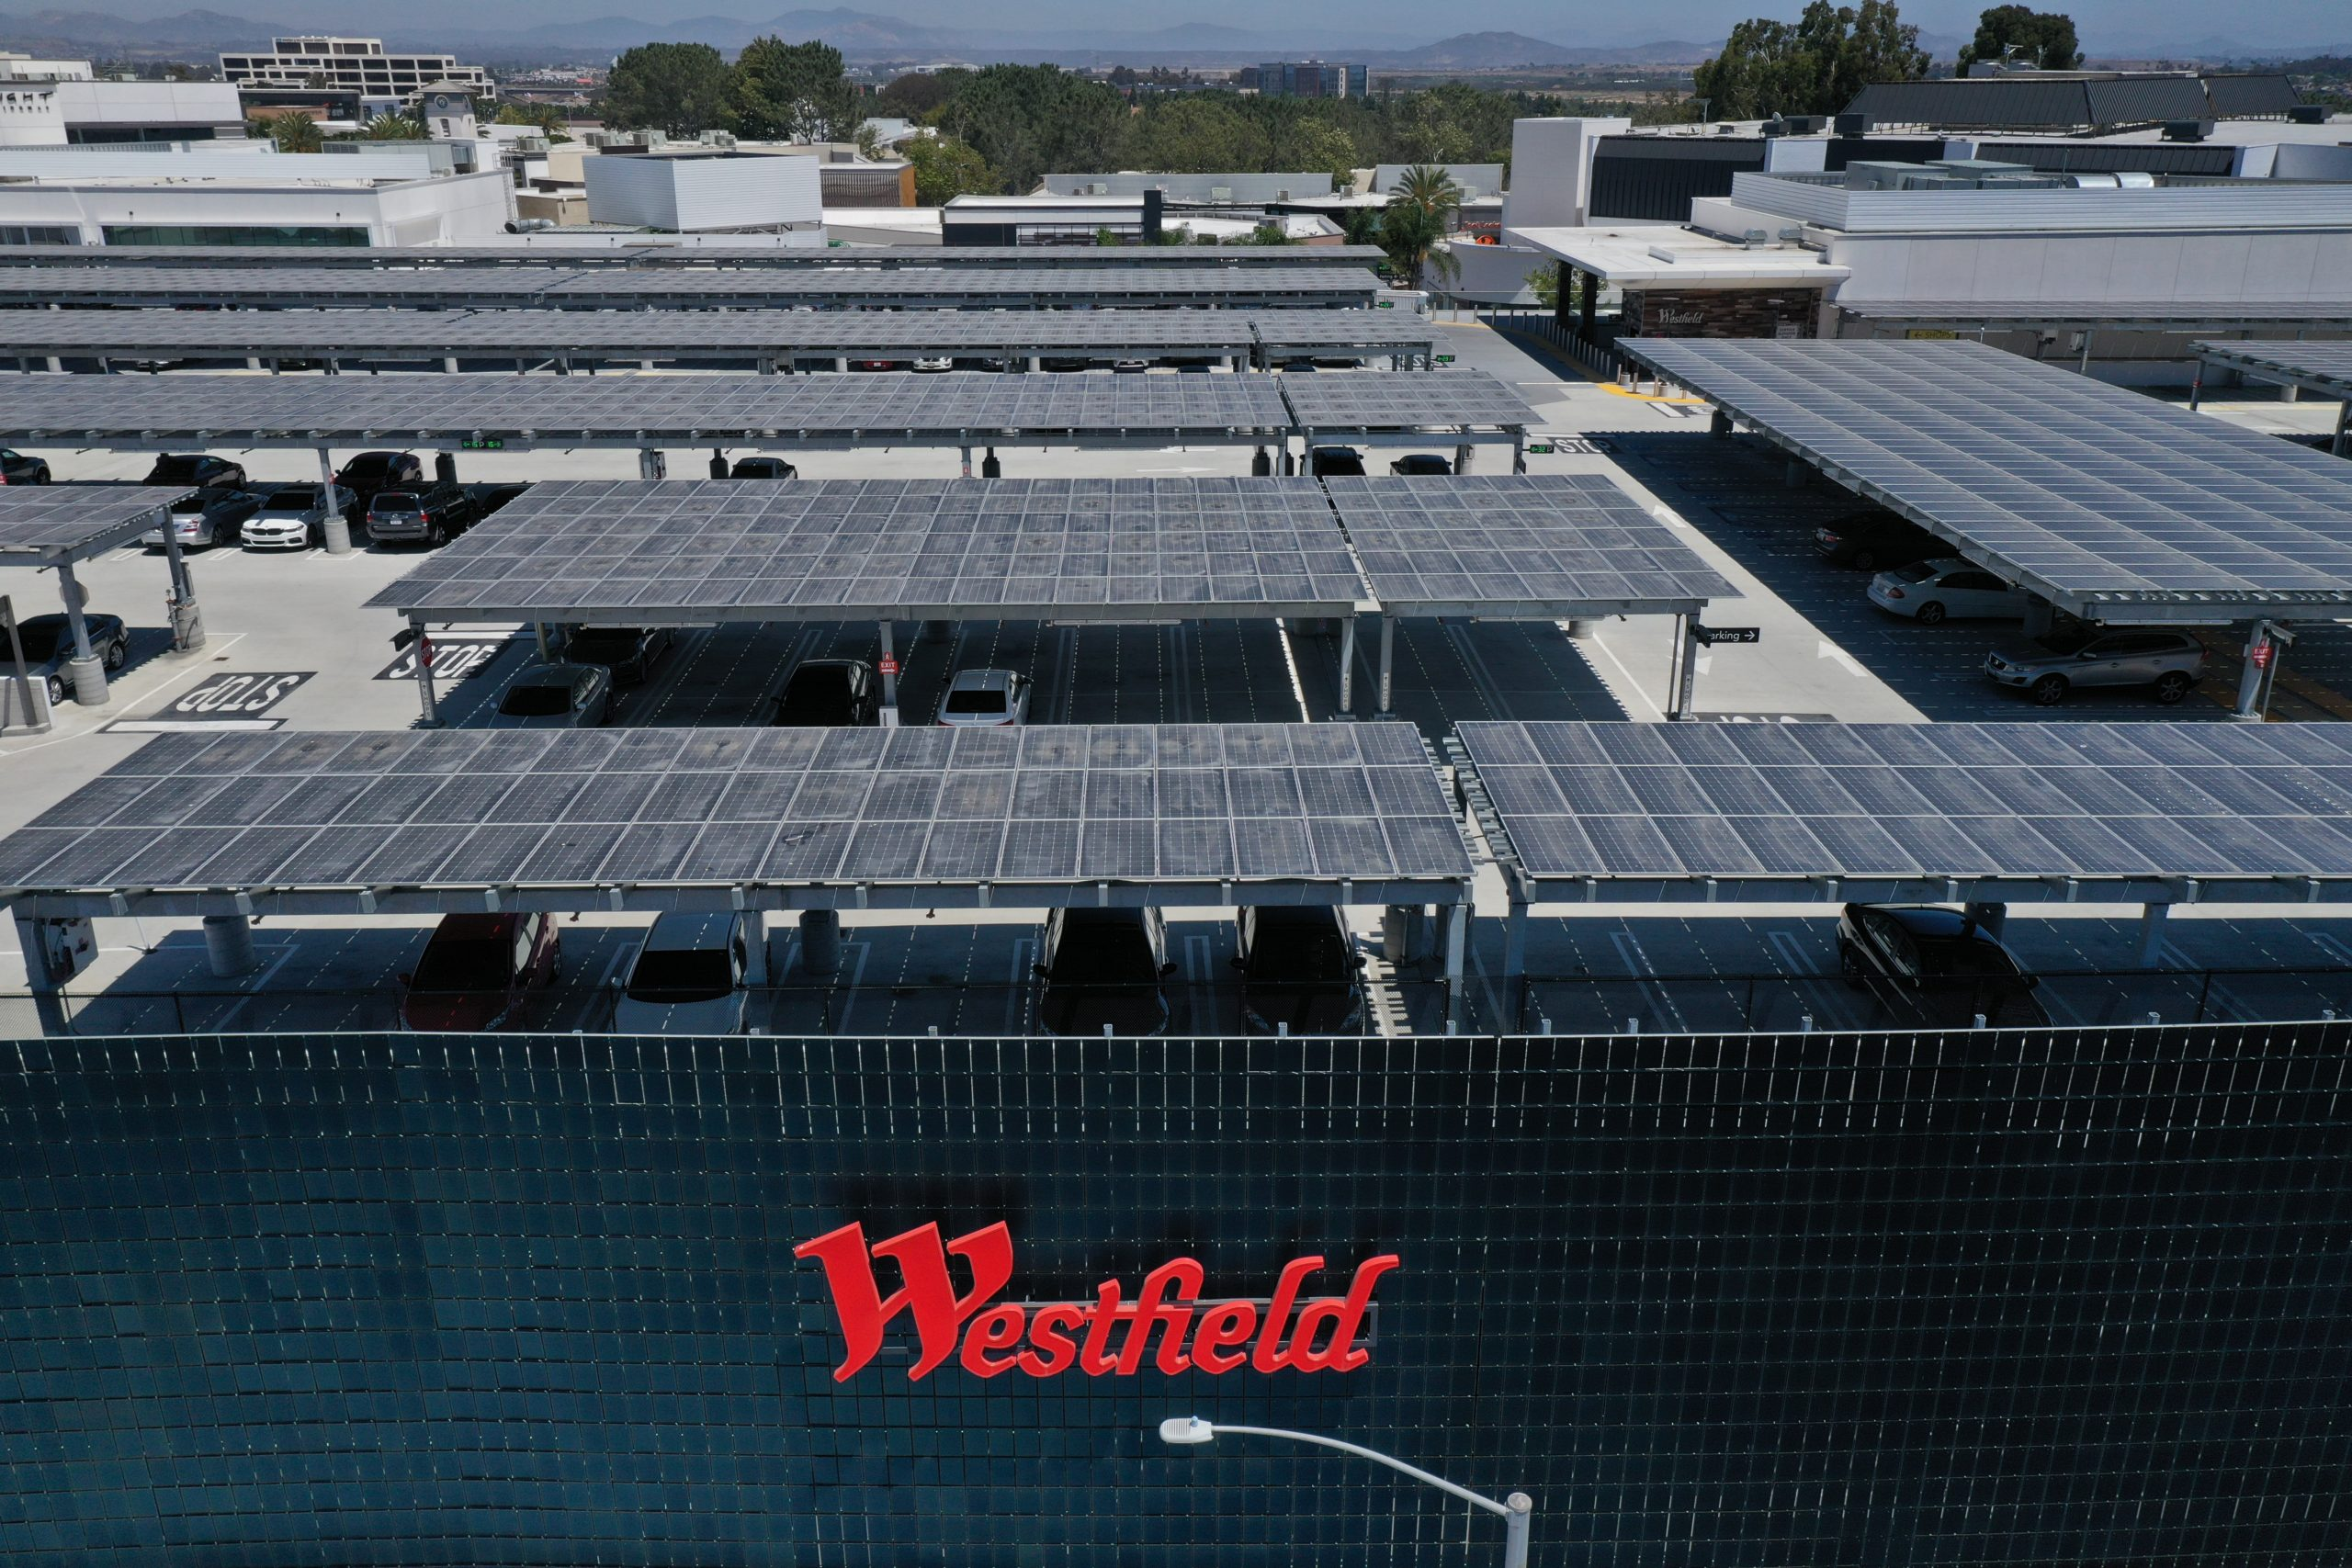 New sustainability linked revolving credit facility for Unibail-Rodamco-Westfield